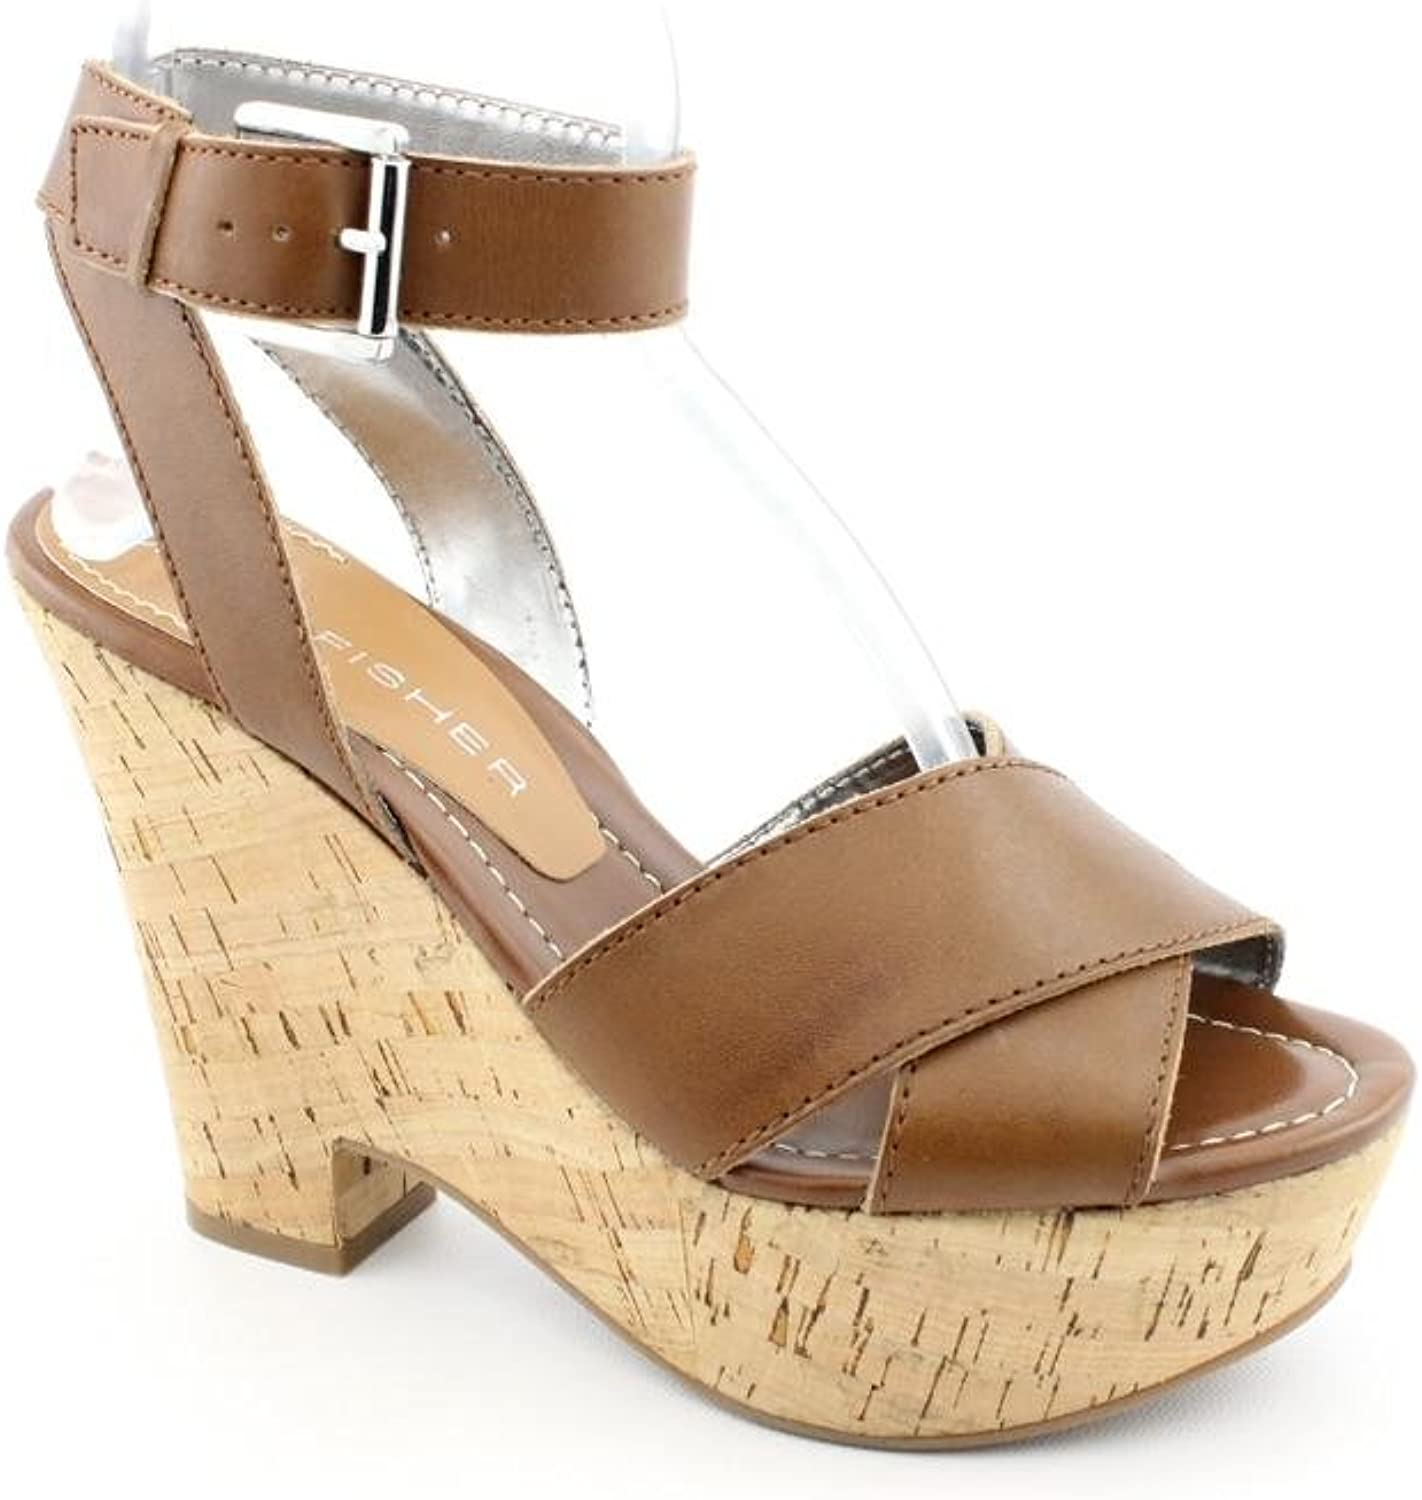 Marc Fisher Sabina Open Toe Platforms Sandals shoes Brown Womens New Display